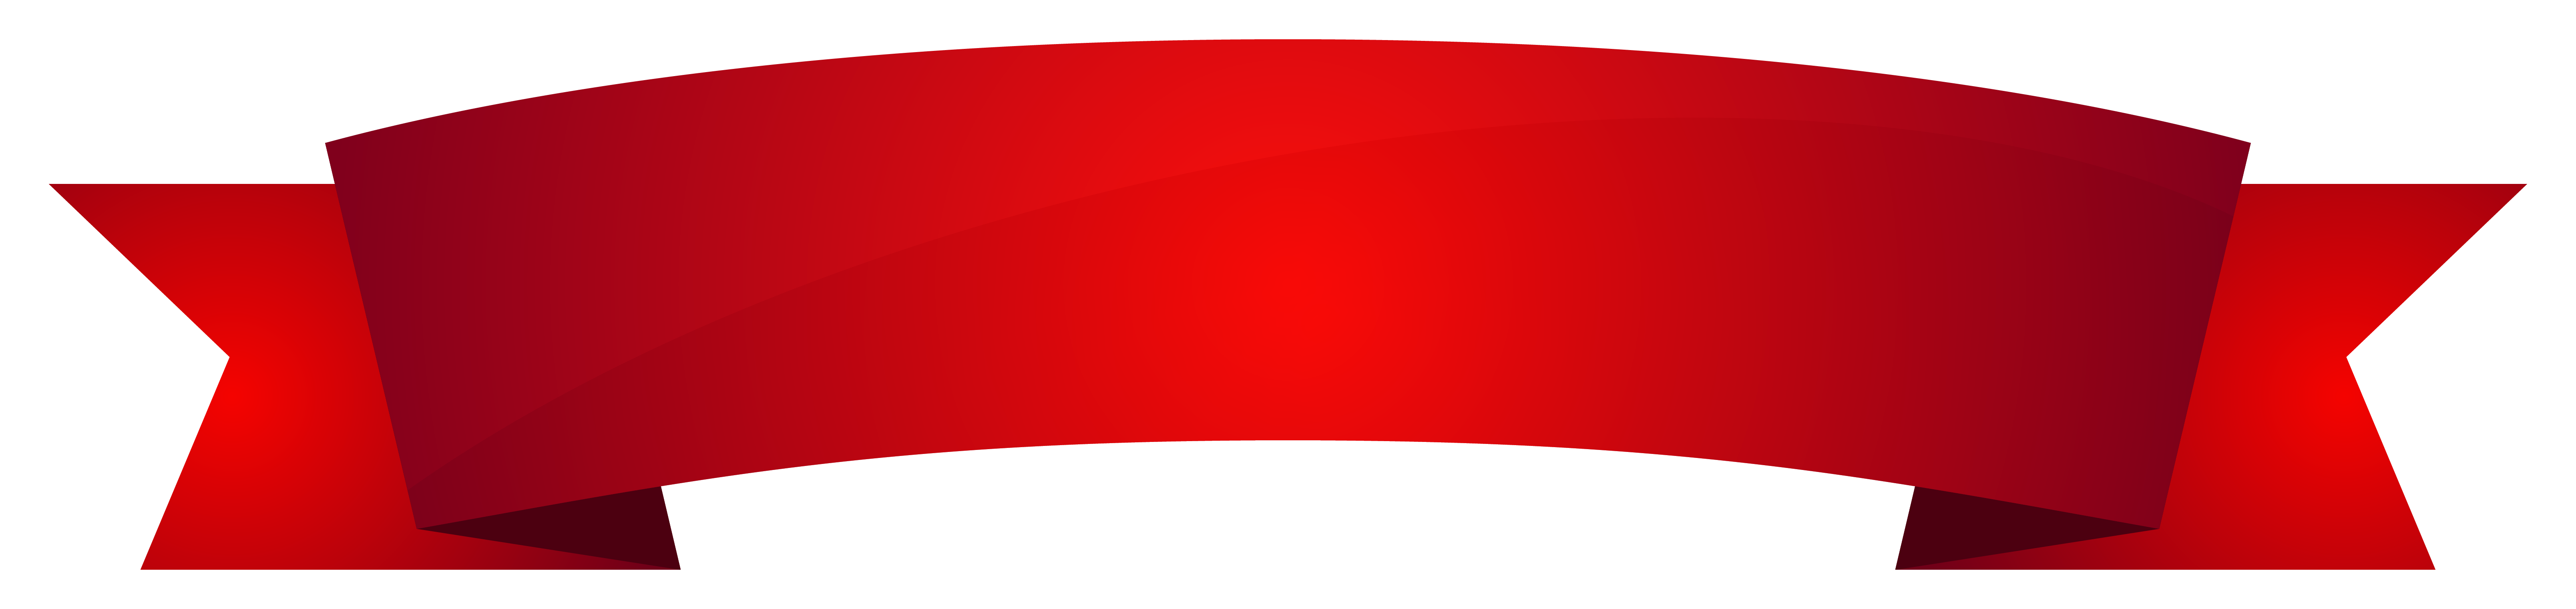 Red png. Banner clipart image gallery